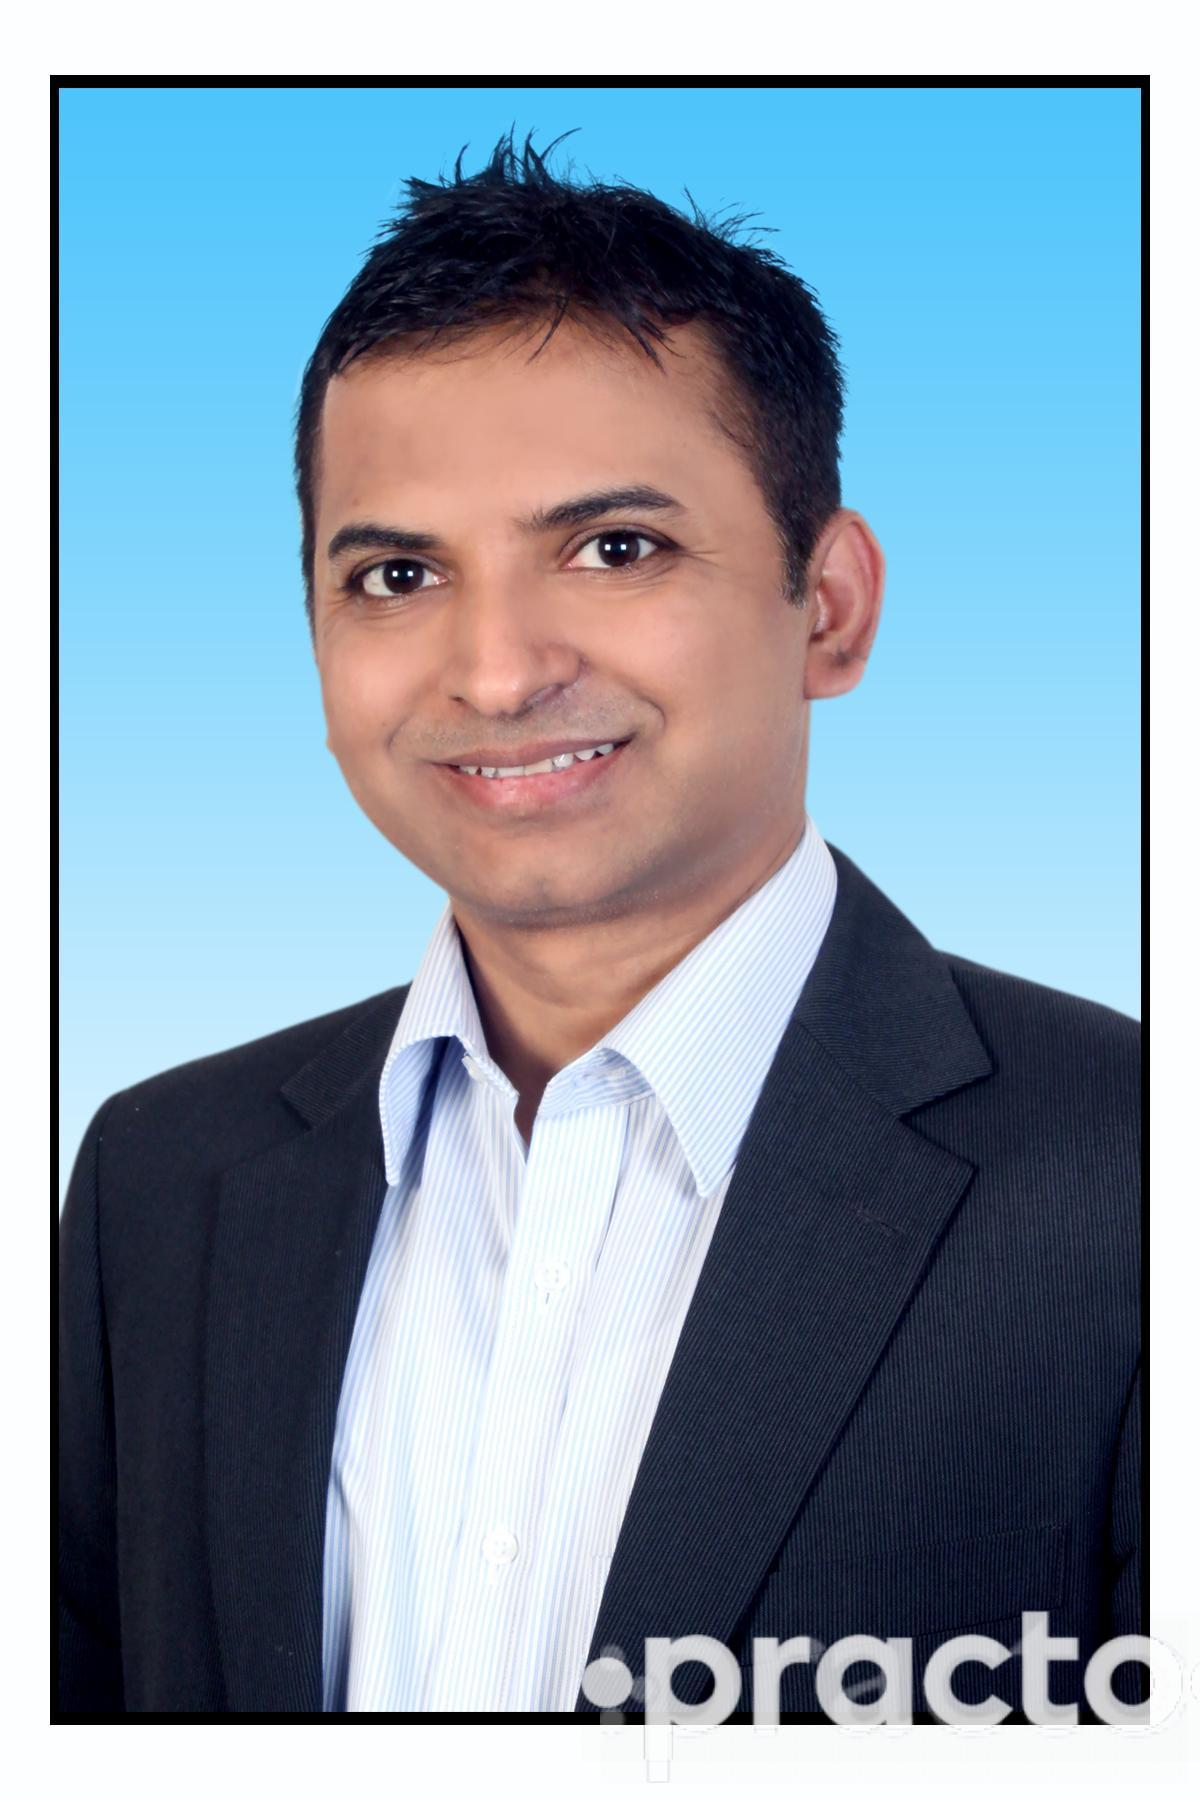 Dr. Vijay Patil - Orthopedist